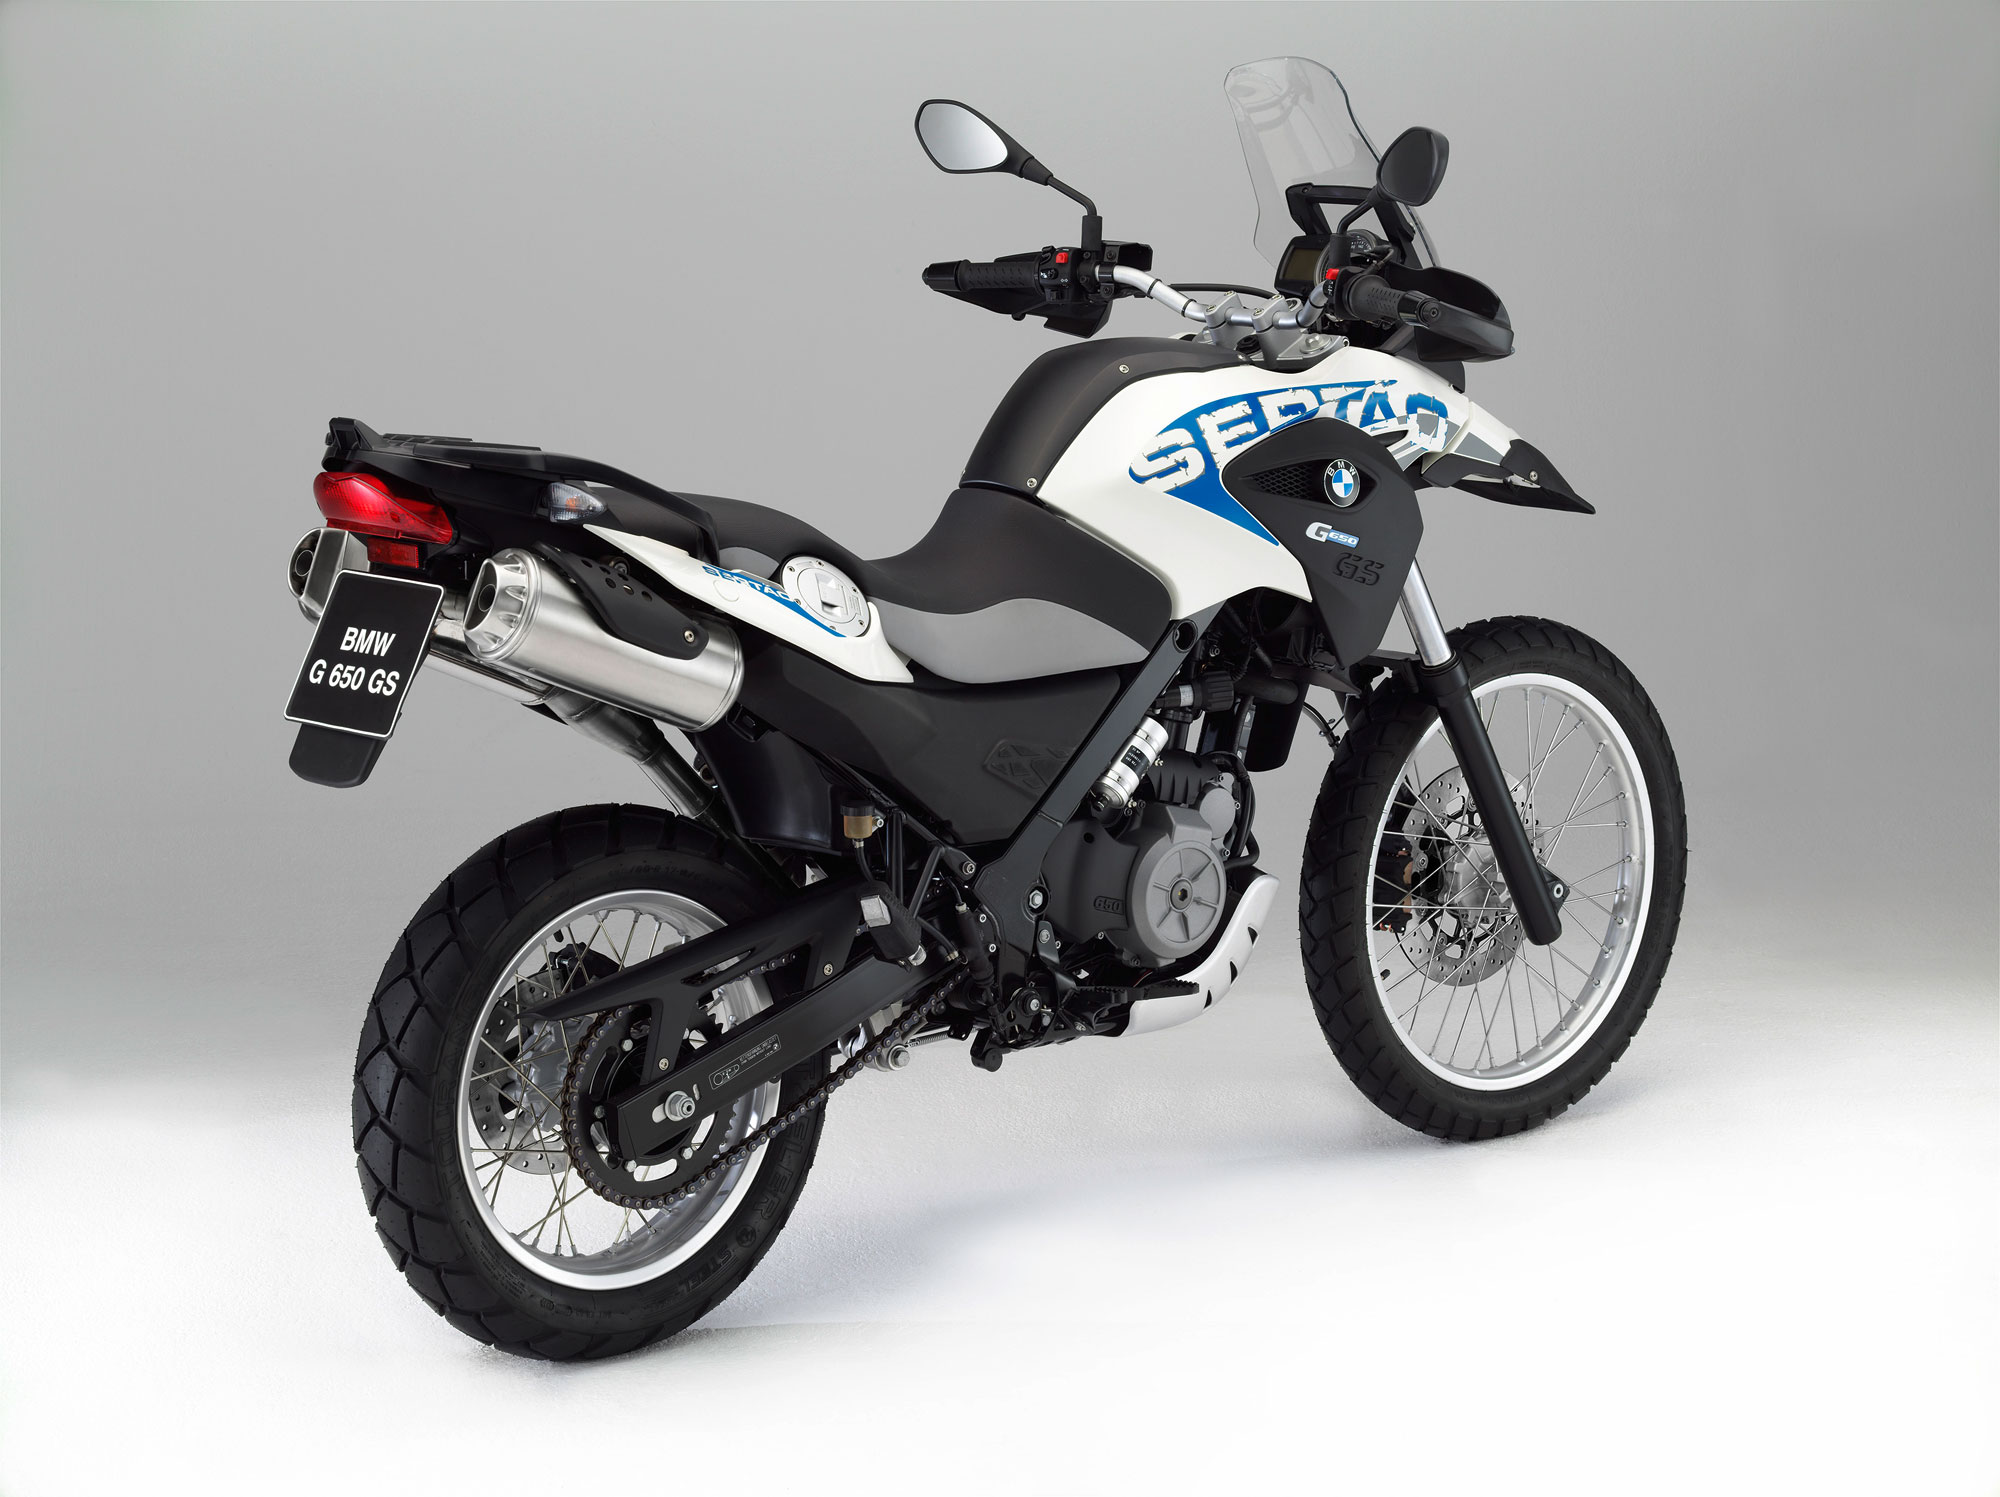 2012 Bmw G650gs Sertao Did Bmw Get It Right This Time Adventure